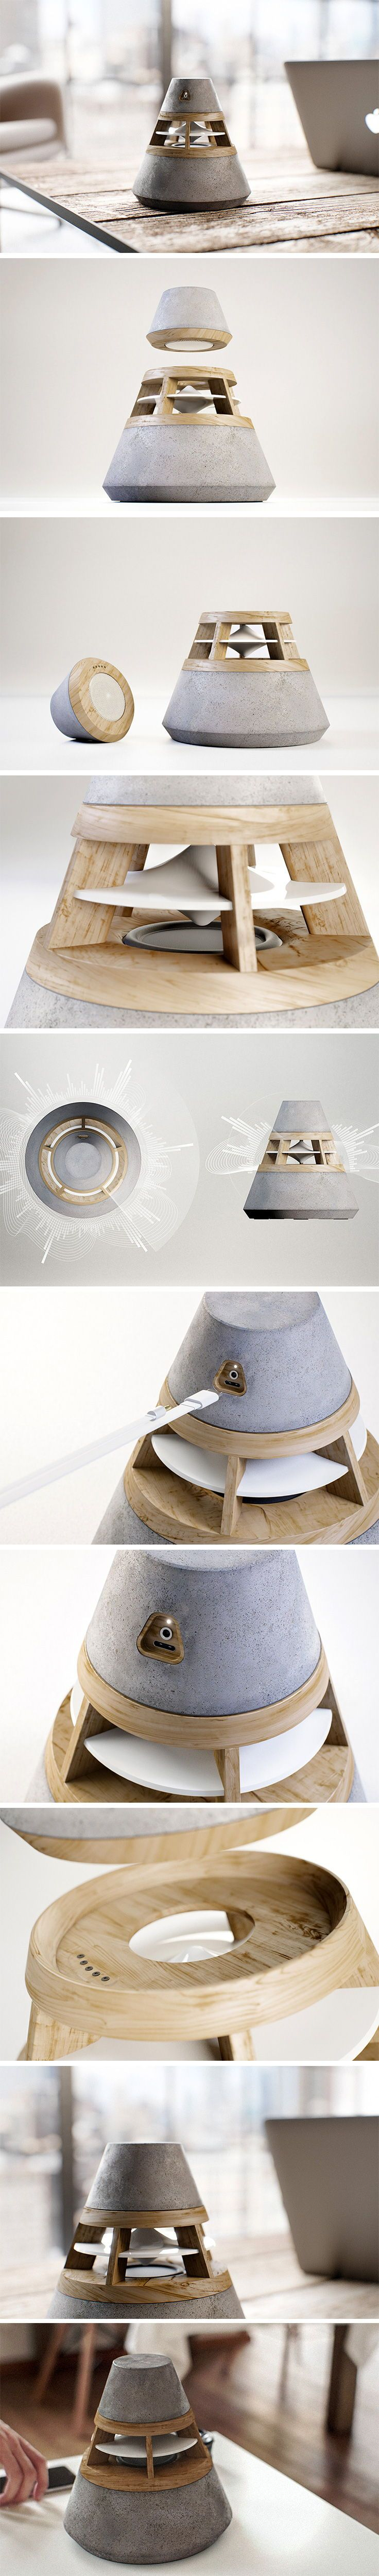 One 360 Degree Modular Speaker Out Of 2 Portable In 2020 Tech Design Design Gym Design